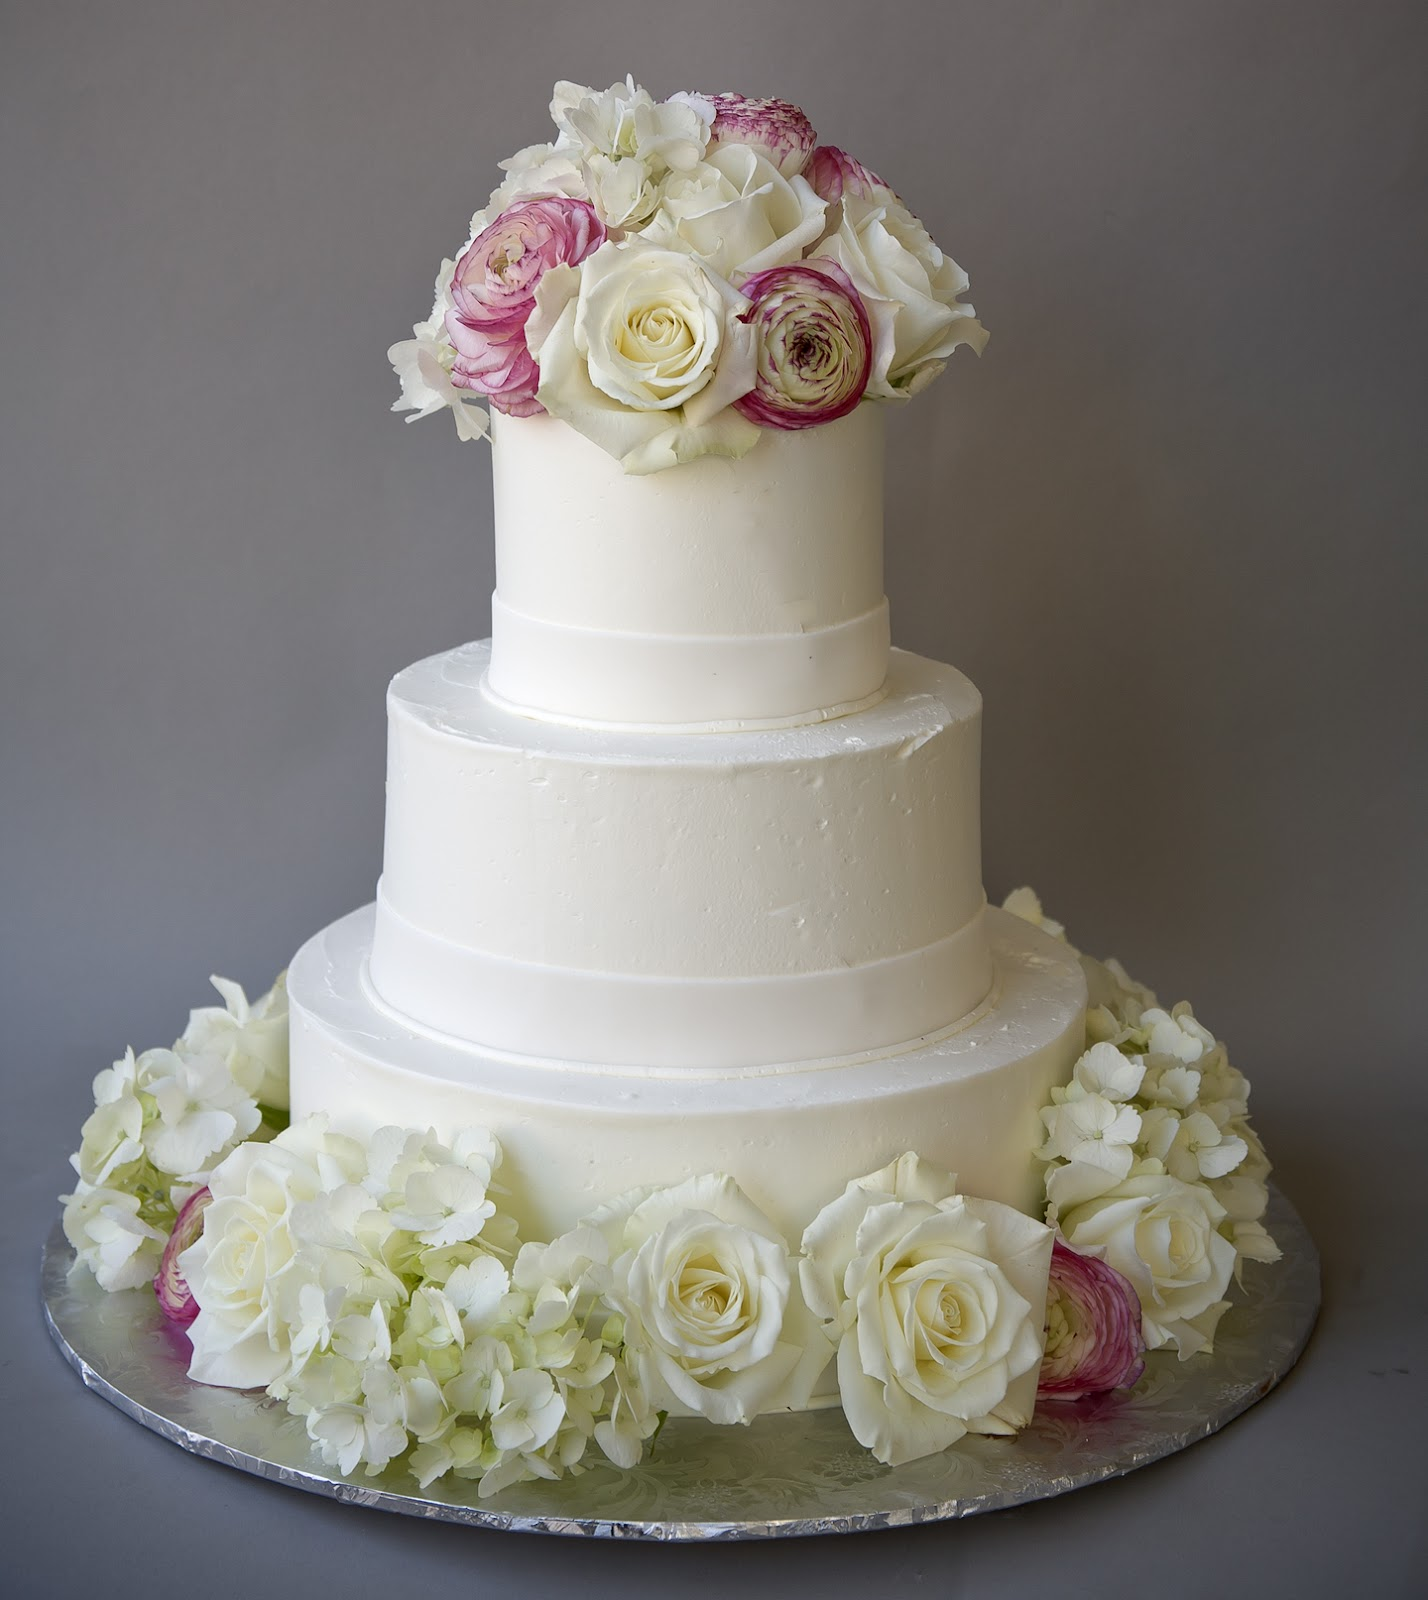 Wedding Cakes With Flowers On Top: A Simple Cake: Fresh Flowers For Wedding Cakes